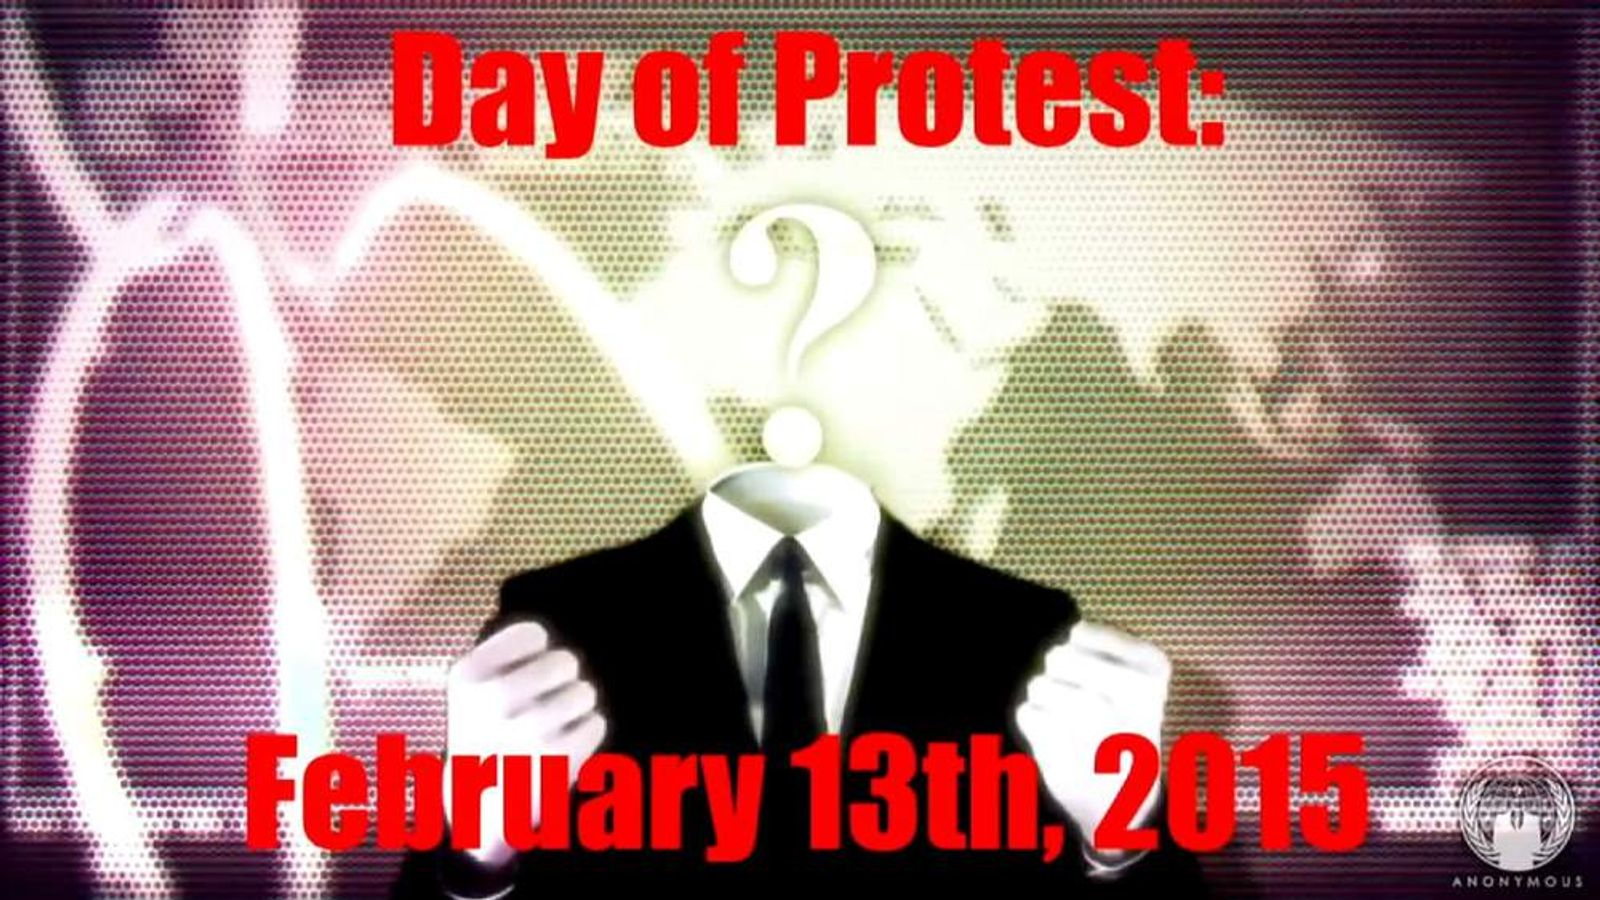 Anonymous hacking group protest day